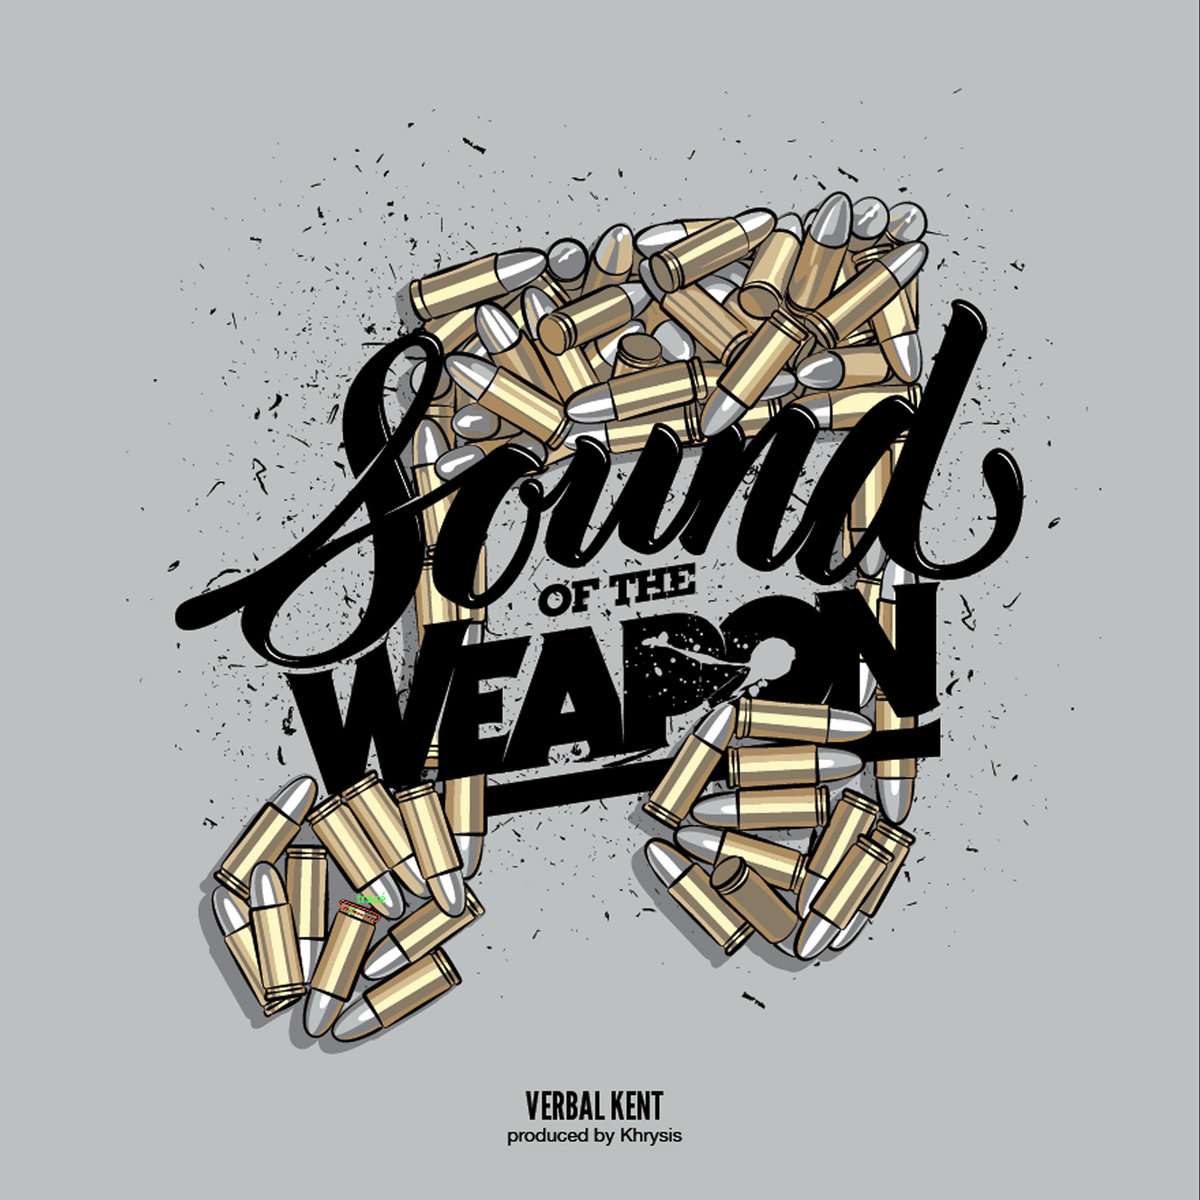 Resultado de imagen para Verbal Kent - Sound of the Weapon